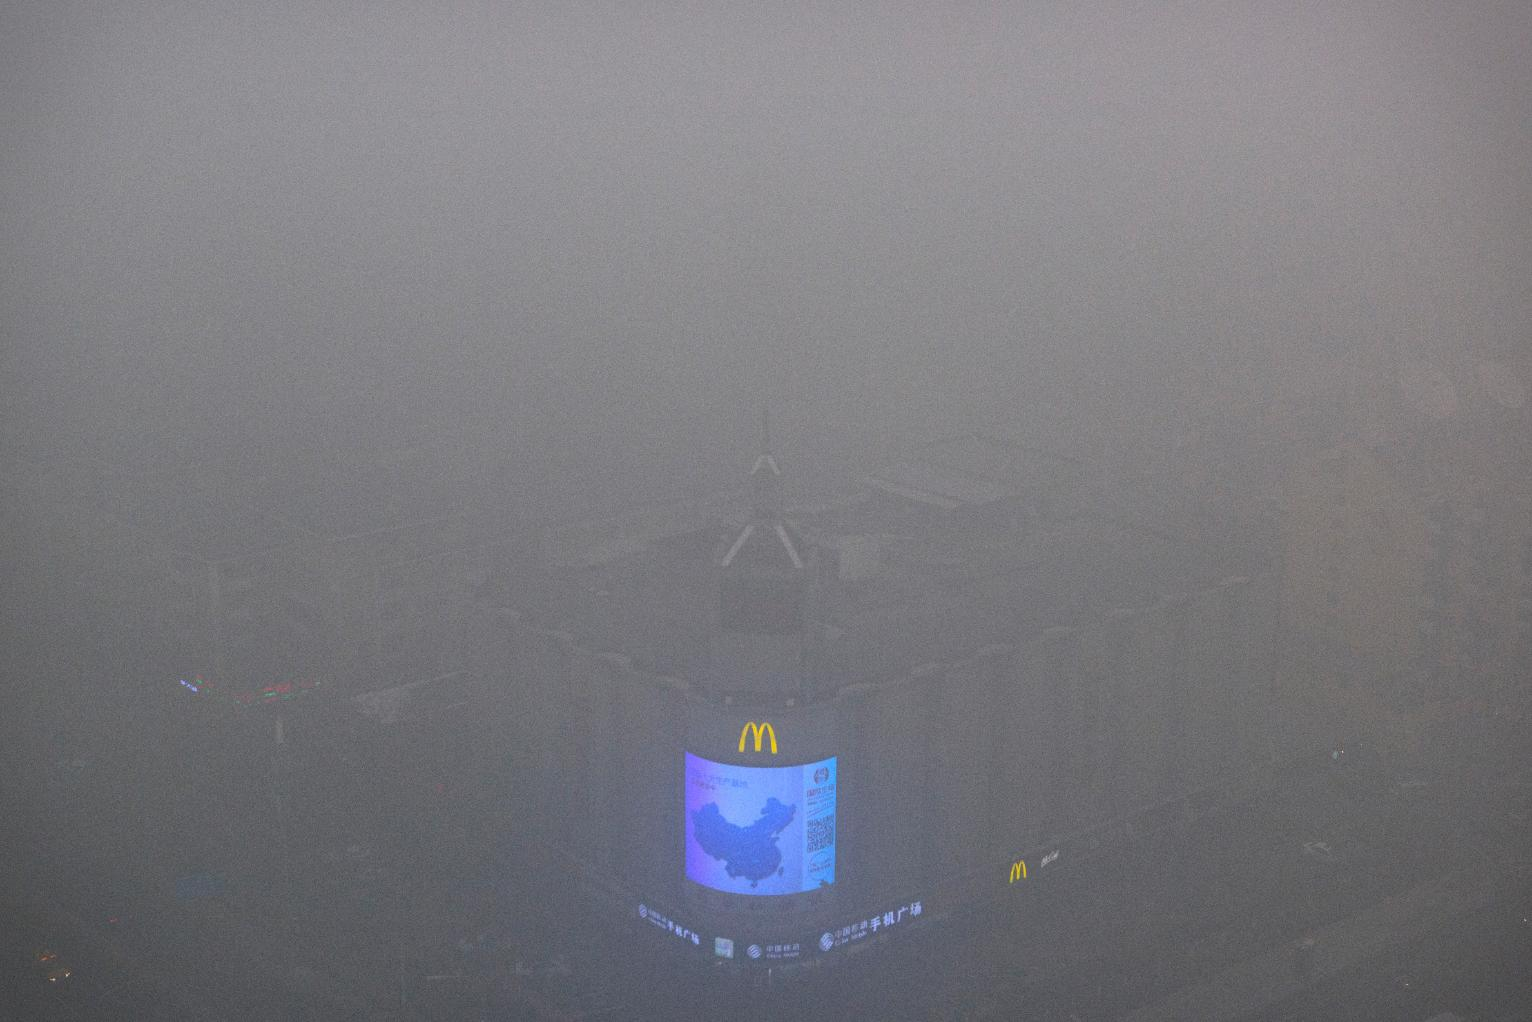 Beijing Air Pollution Reaches Hazardous Levels Health